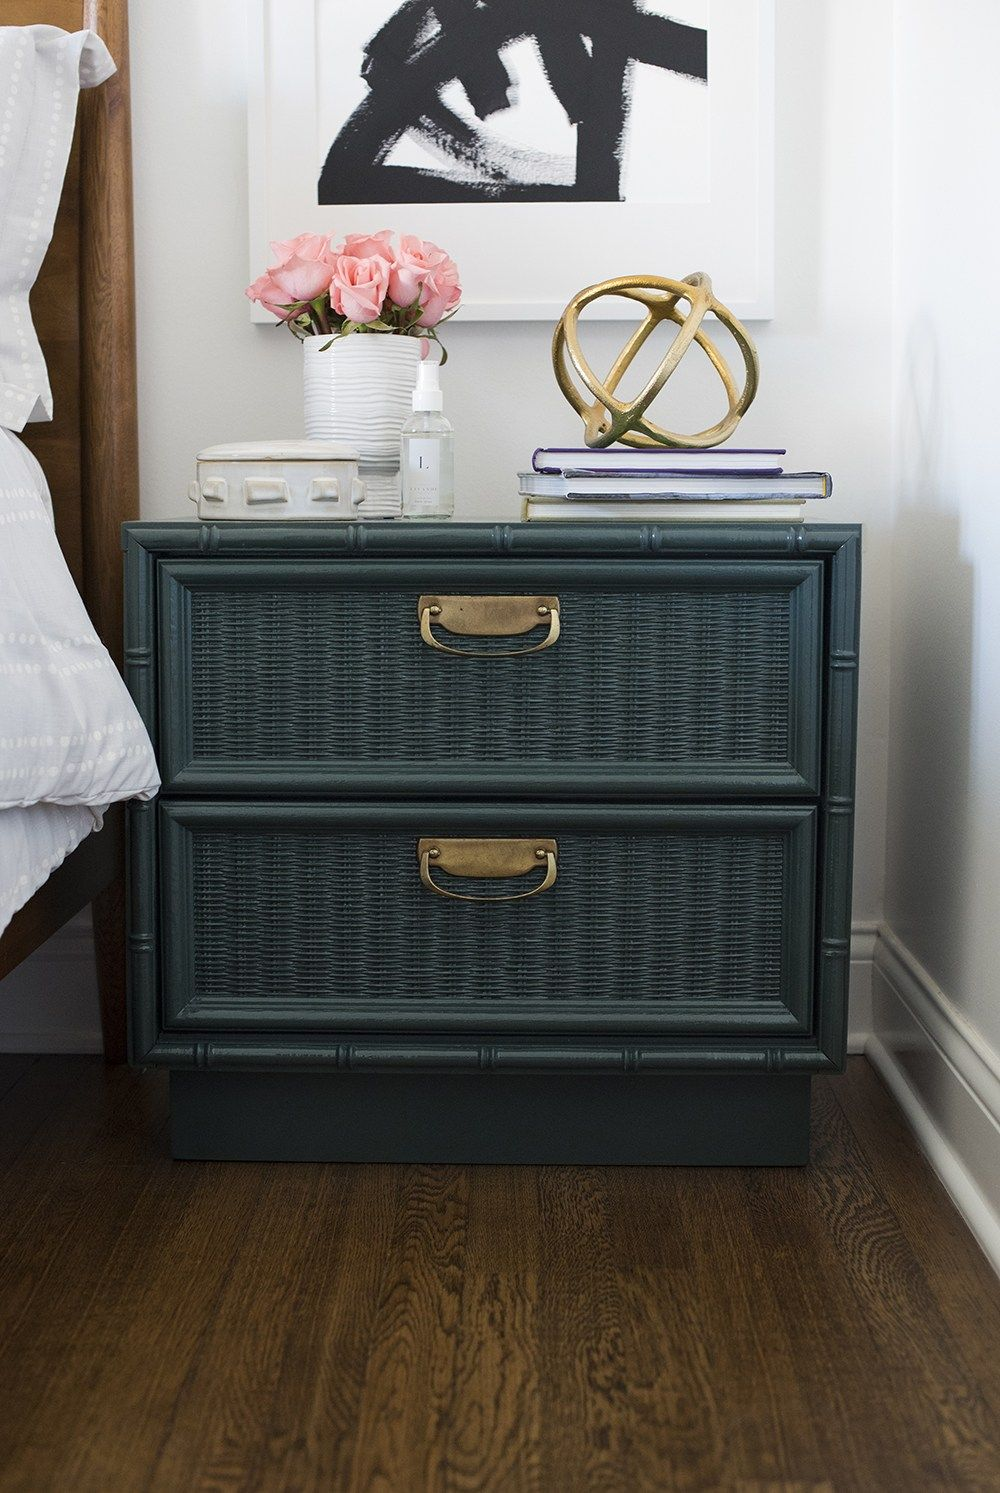 6 Ways To Style Your Nightstand Wicker Bedroom Furniture Painting Wicker Furniture Indoor Wicker Furniture